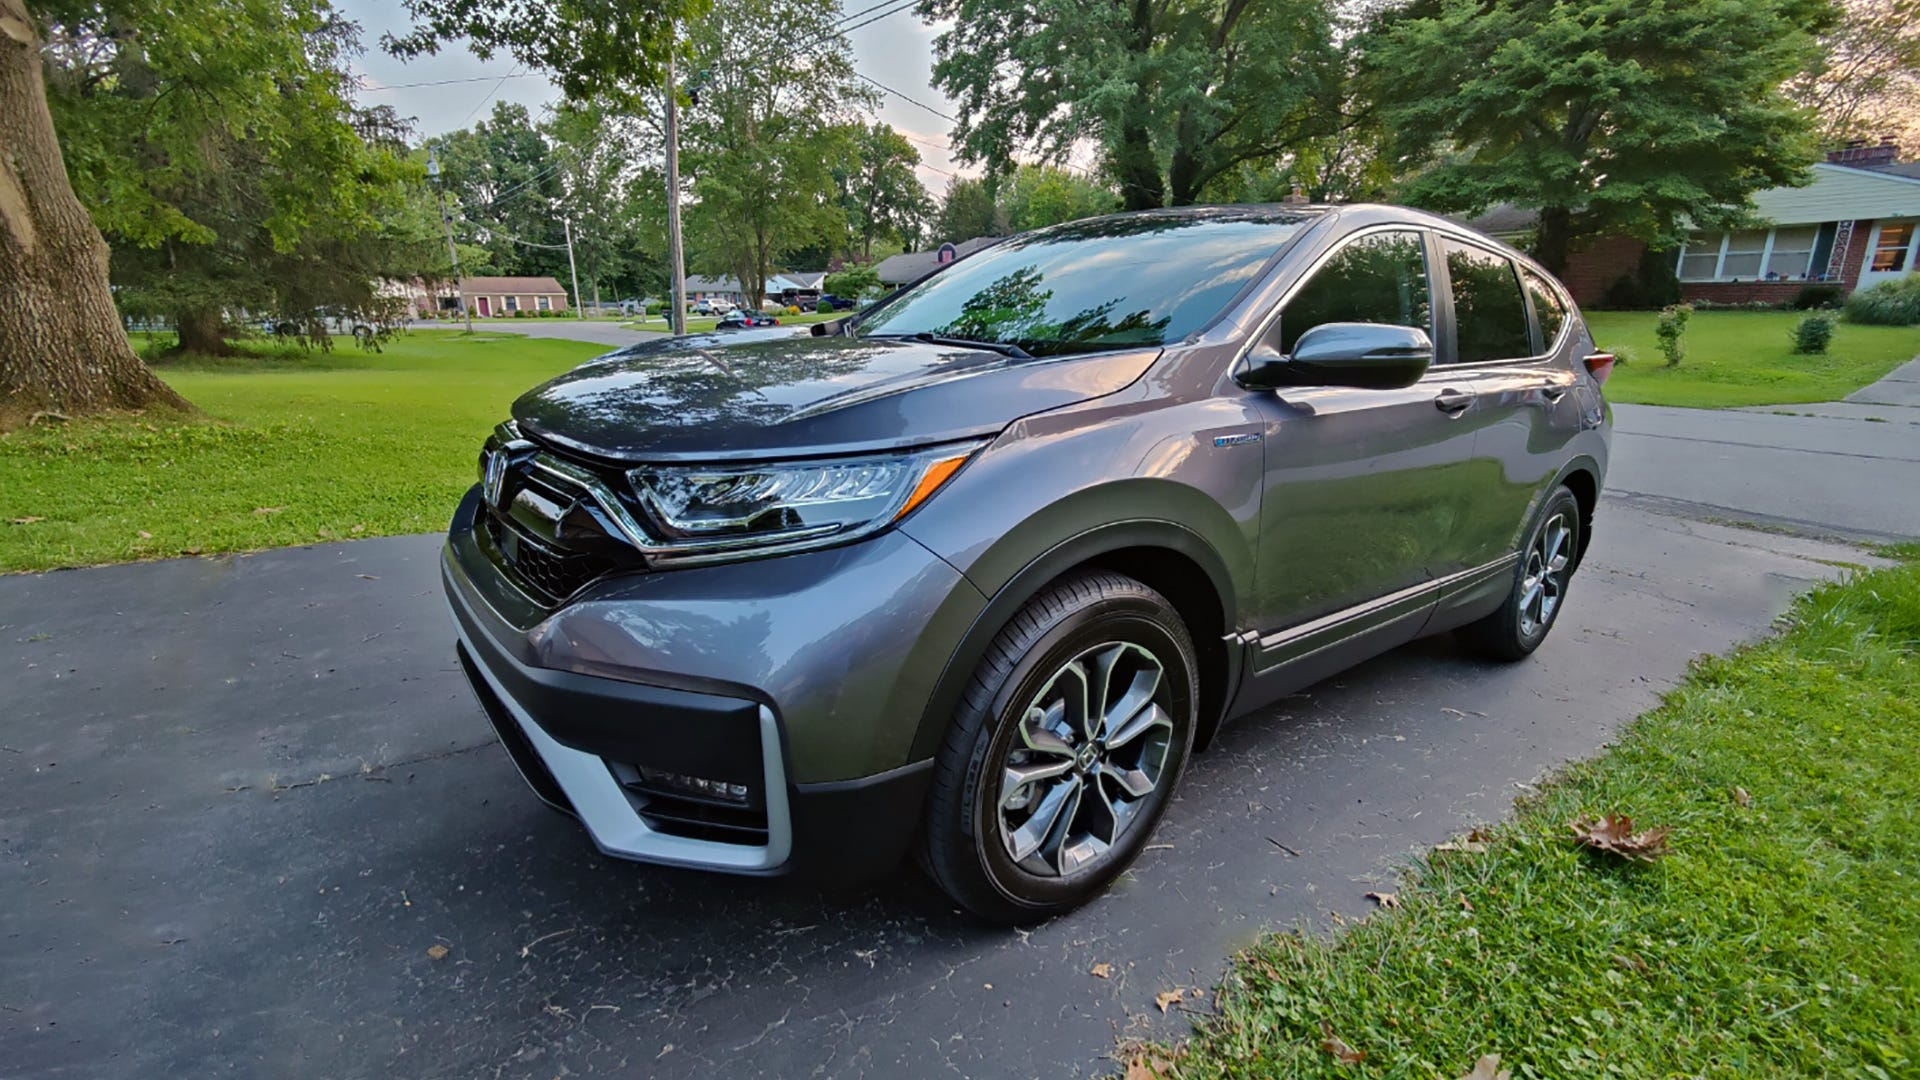 The same steel-grey Honda CR-V Hybrid from before, at another angle